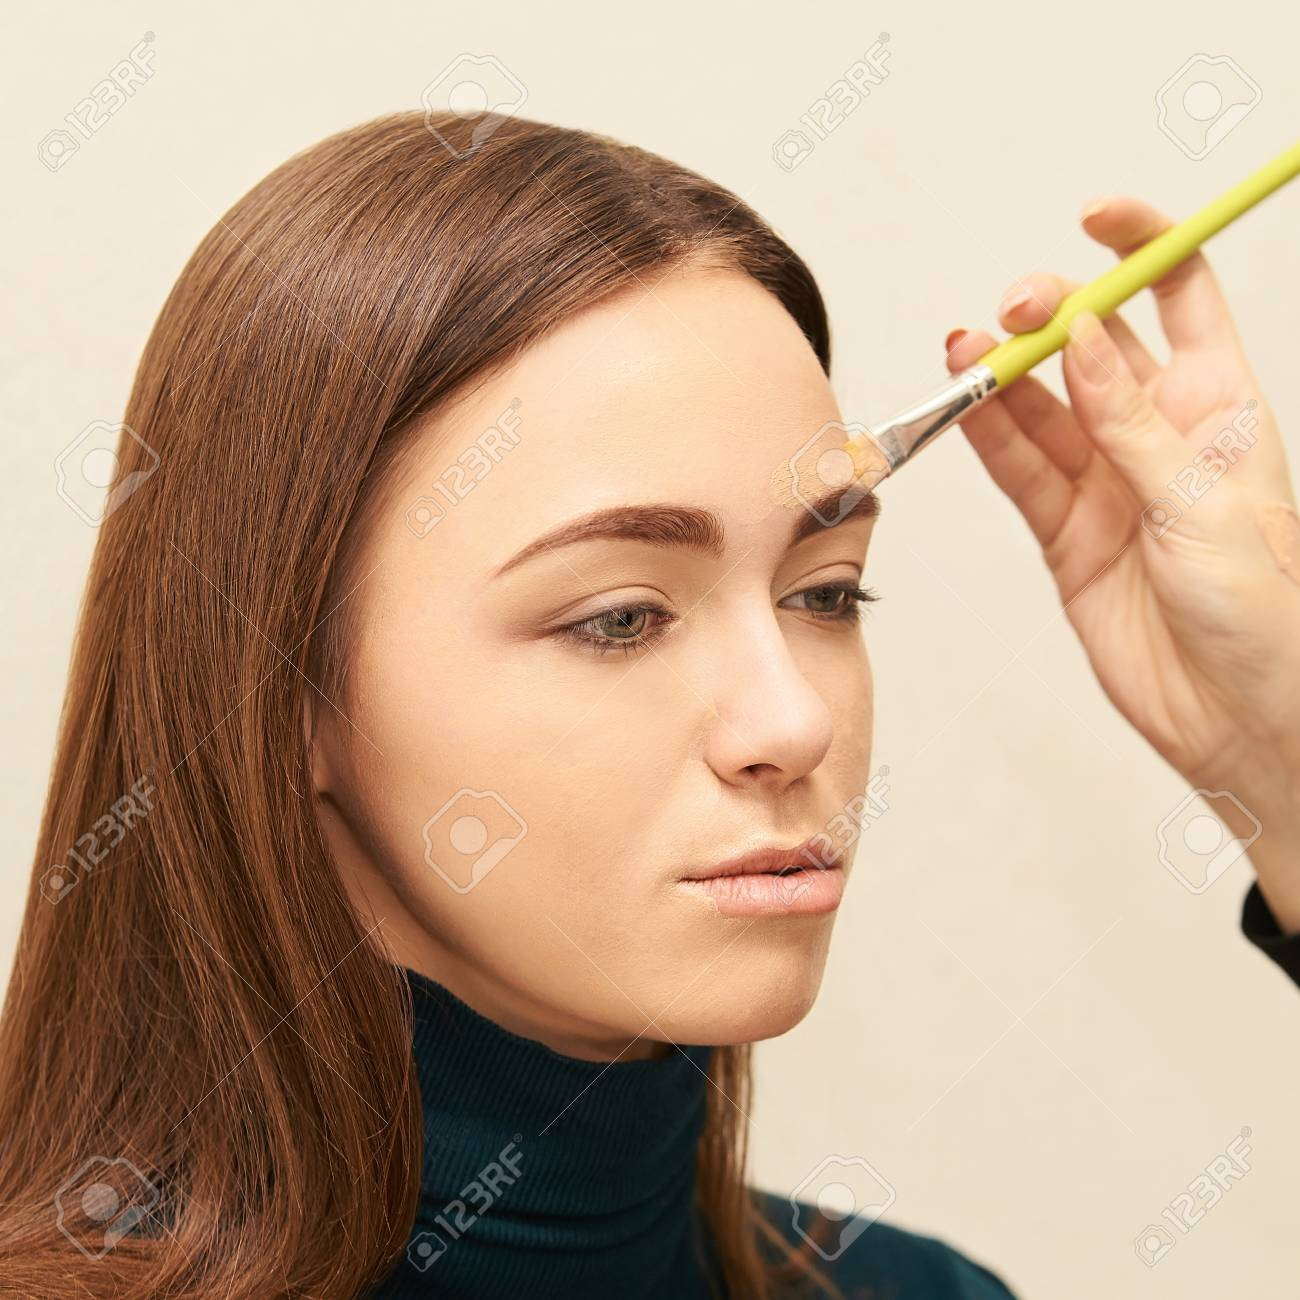 Makeup Professional Artist Apply Face Mascara Woman Beauty Model Stock Photo Picture And Royalty Free Image Image 114856615